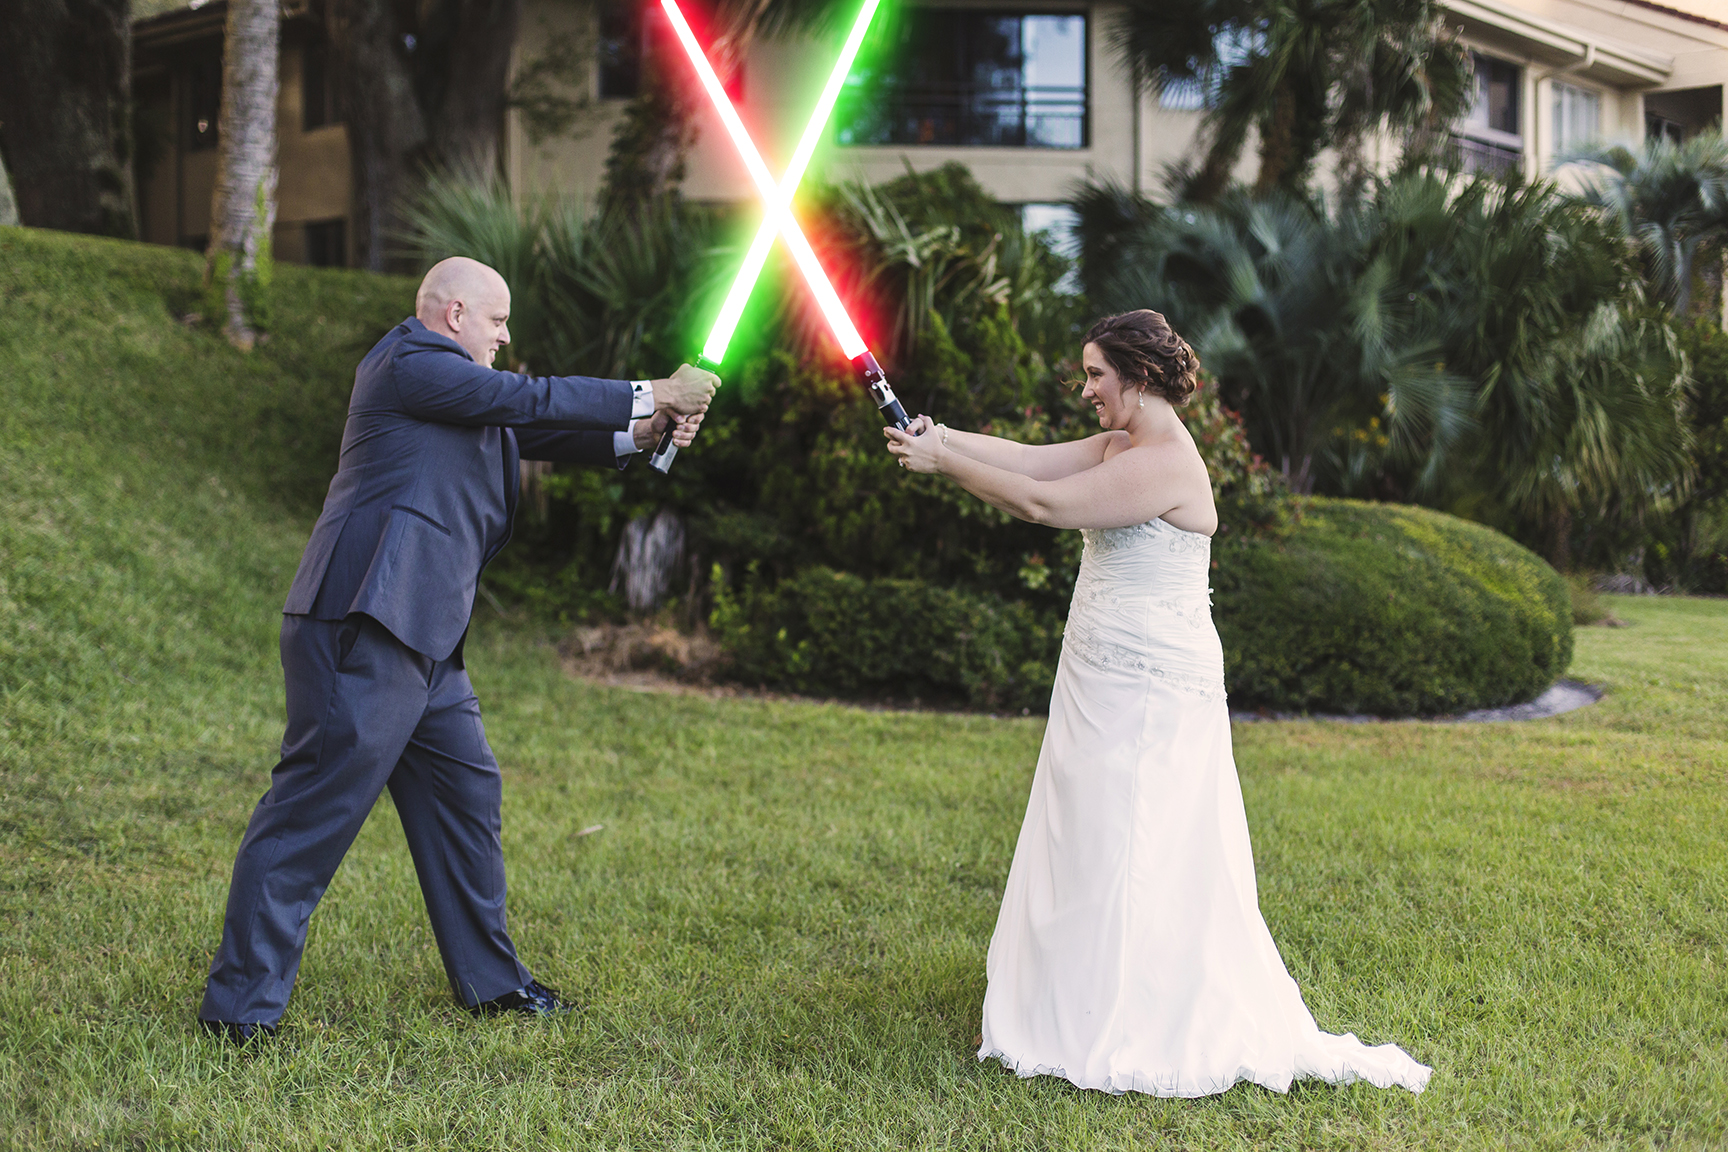 adam-szarmack-star-wars-wedding-jacksonville-photographer-35.jpg